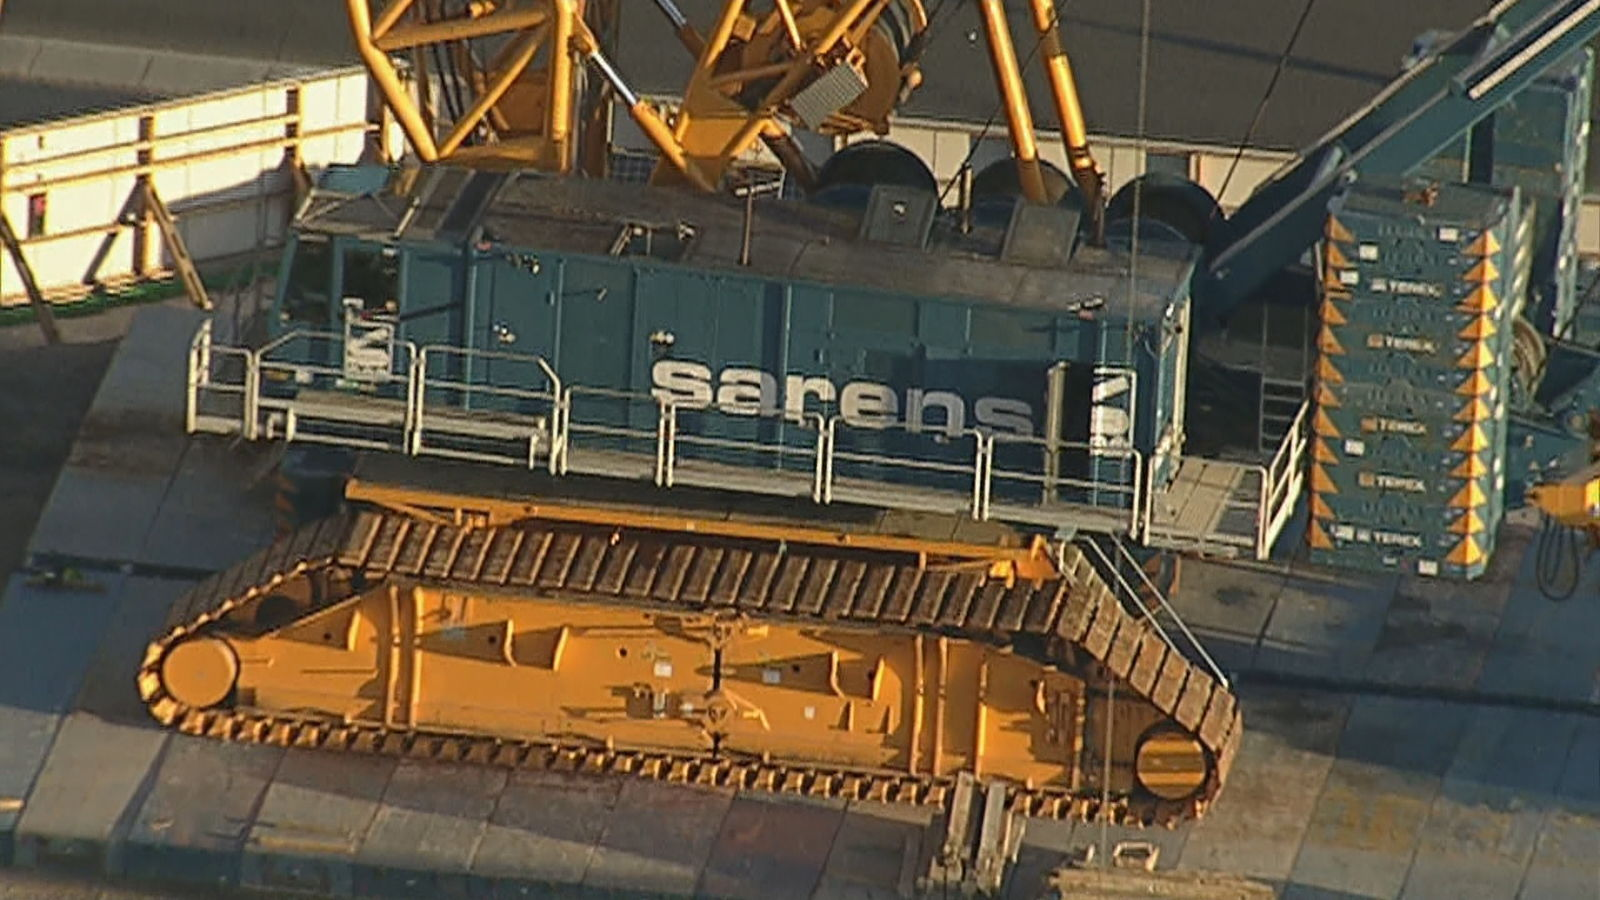 A DEMAG CC-8800 Crawler Crane has arrived at the MSG Sphere construction site in Las Vegas, seen on Wednesday, Feb. 26, 2020. (KSNV)